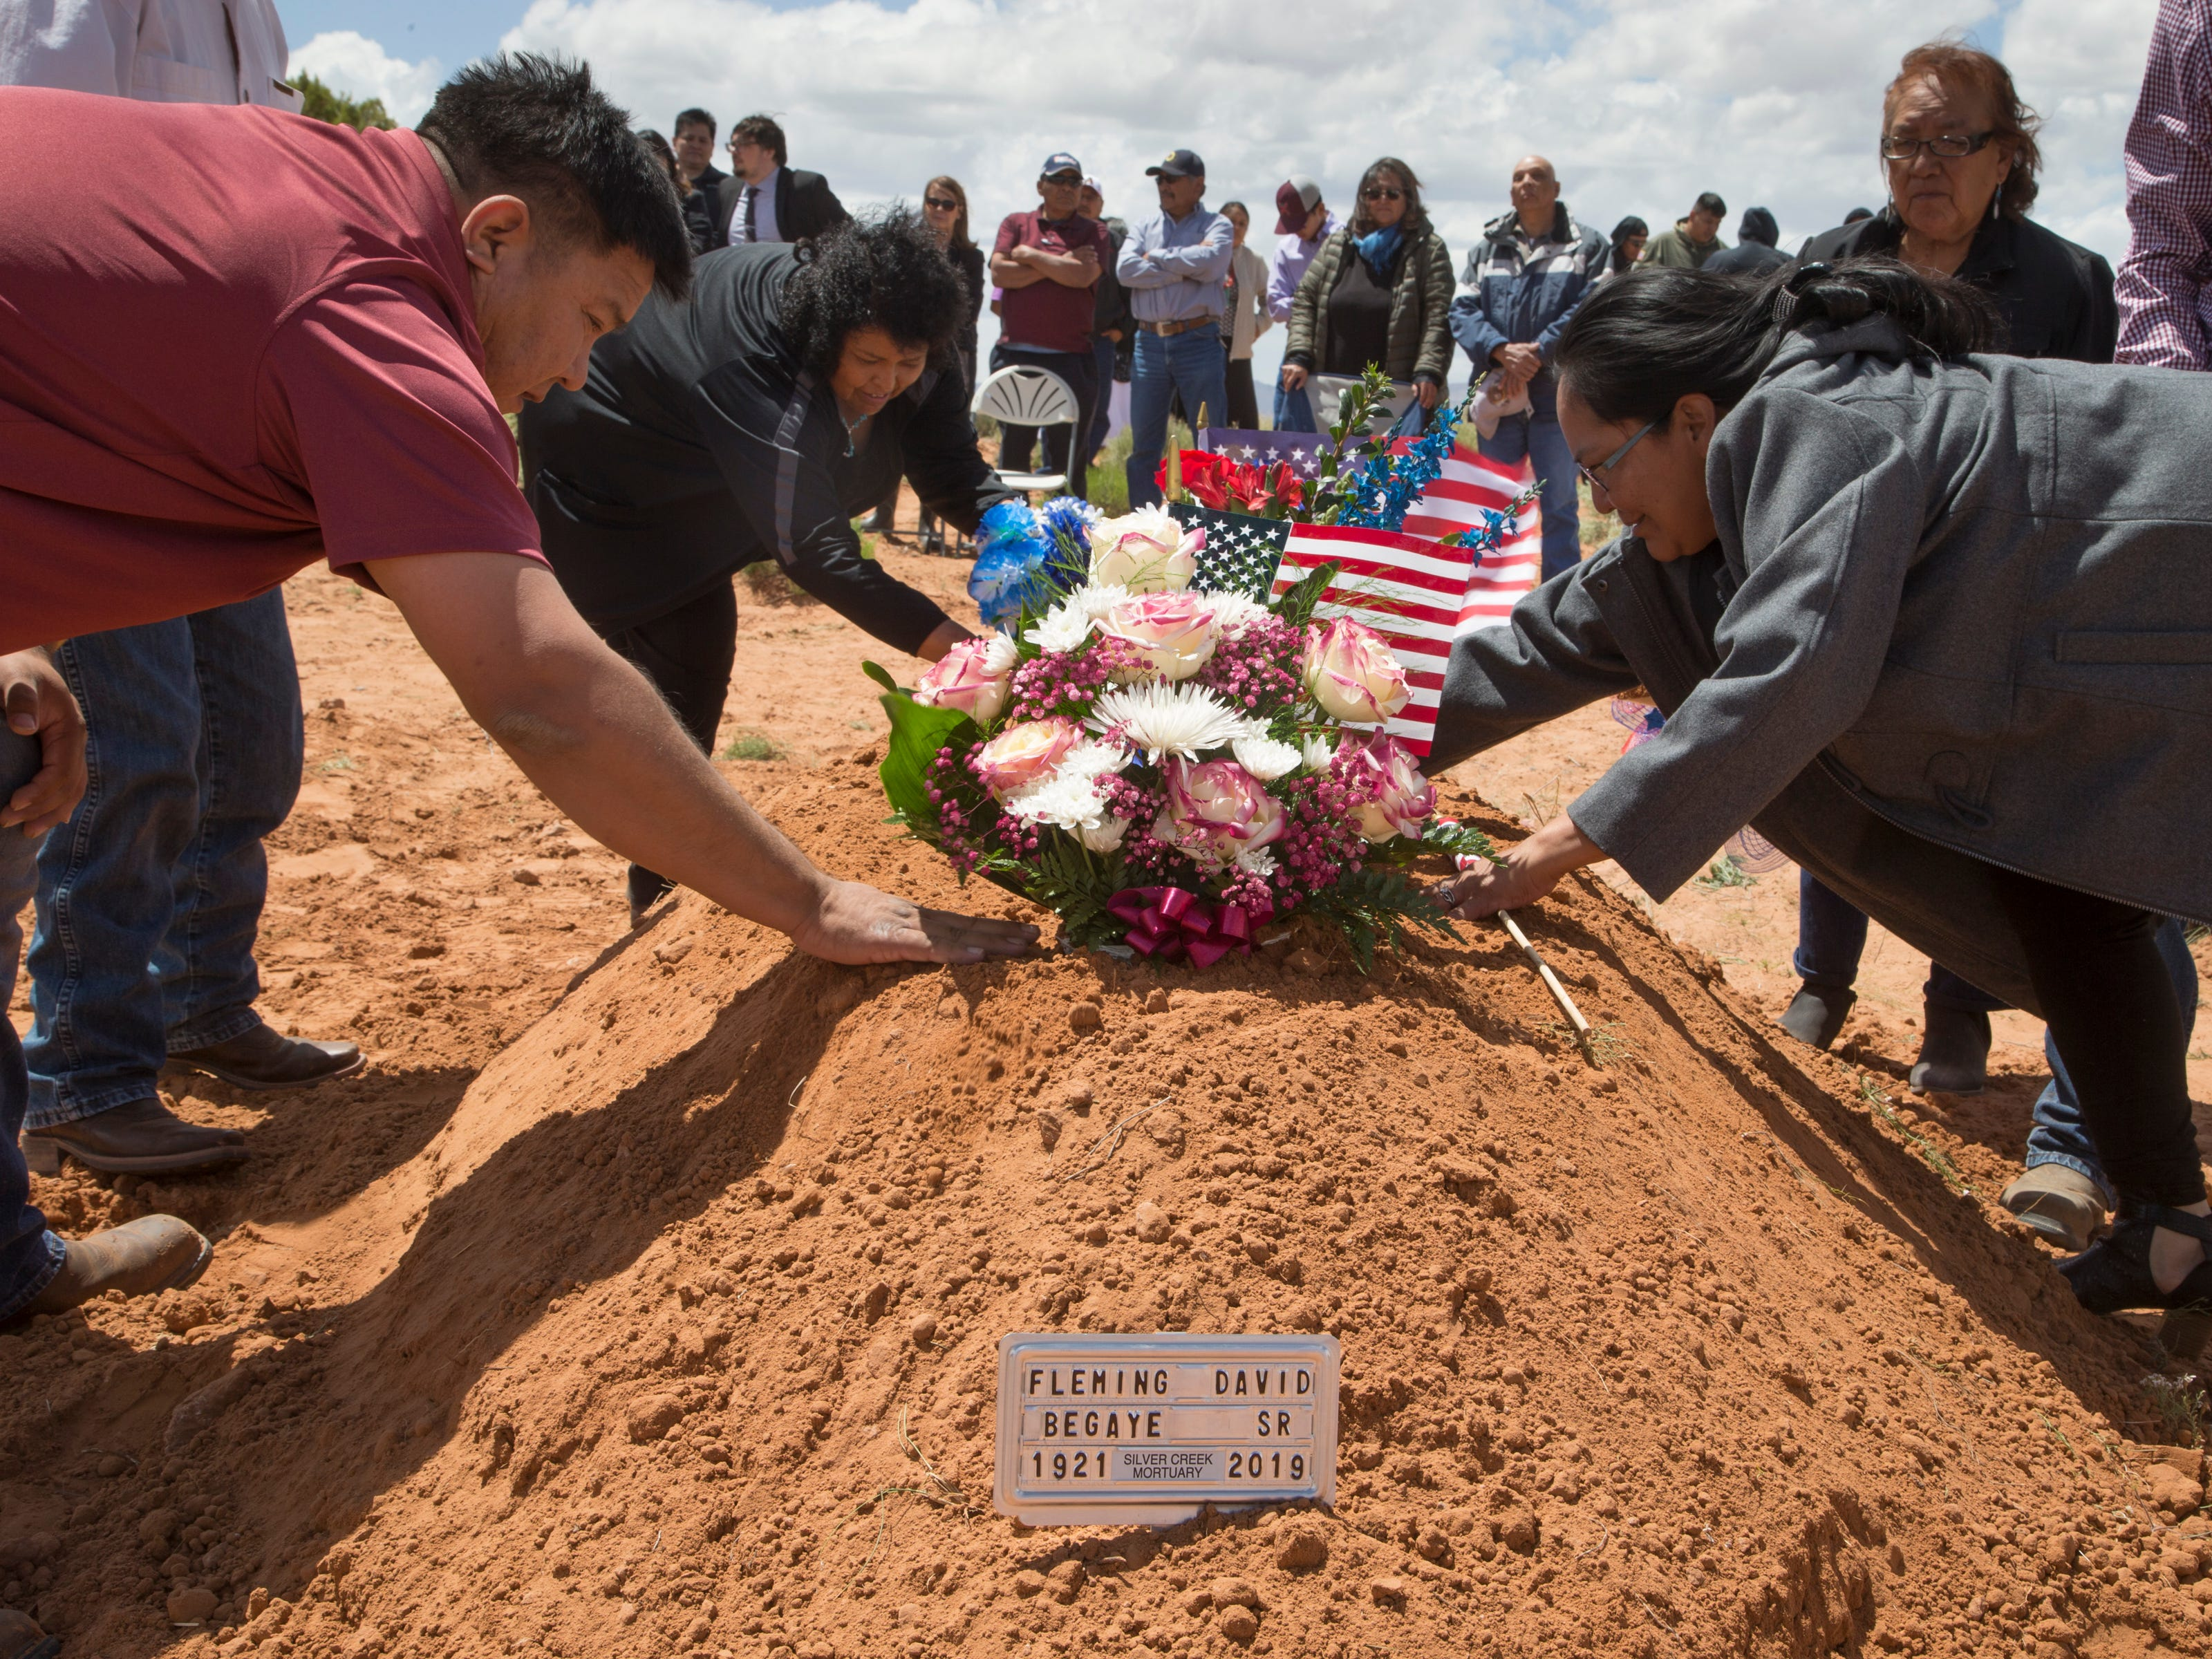 Family and friends place flowers on the grave during the interment of Navajo Code Talker Fleming Begaye Sr. on May 17, 2019, at the family plot in Salt Water Canyon, Ariz.